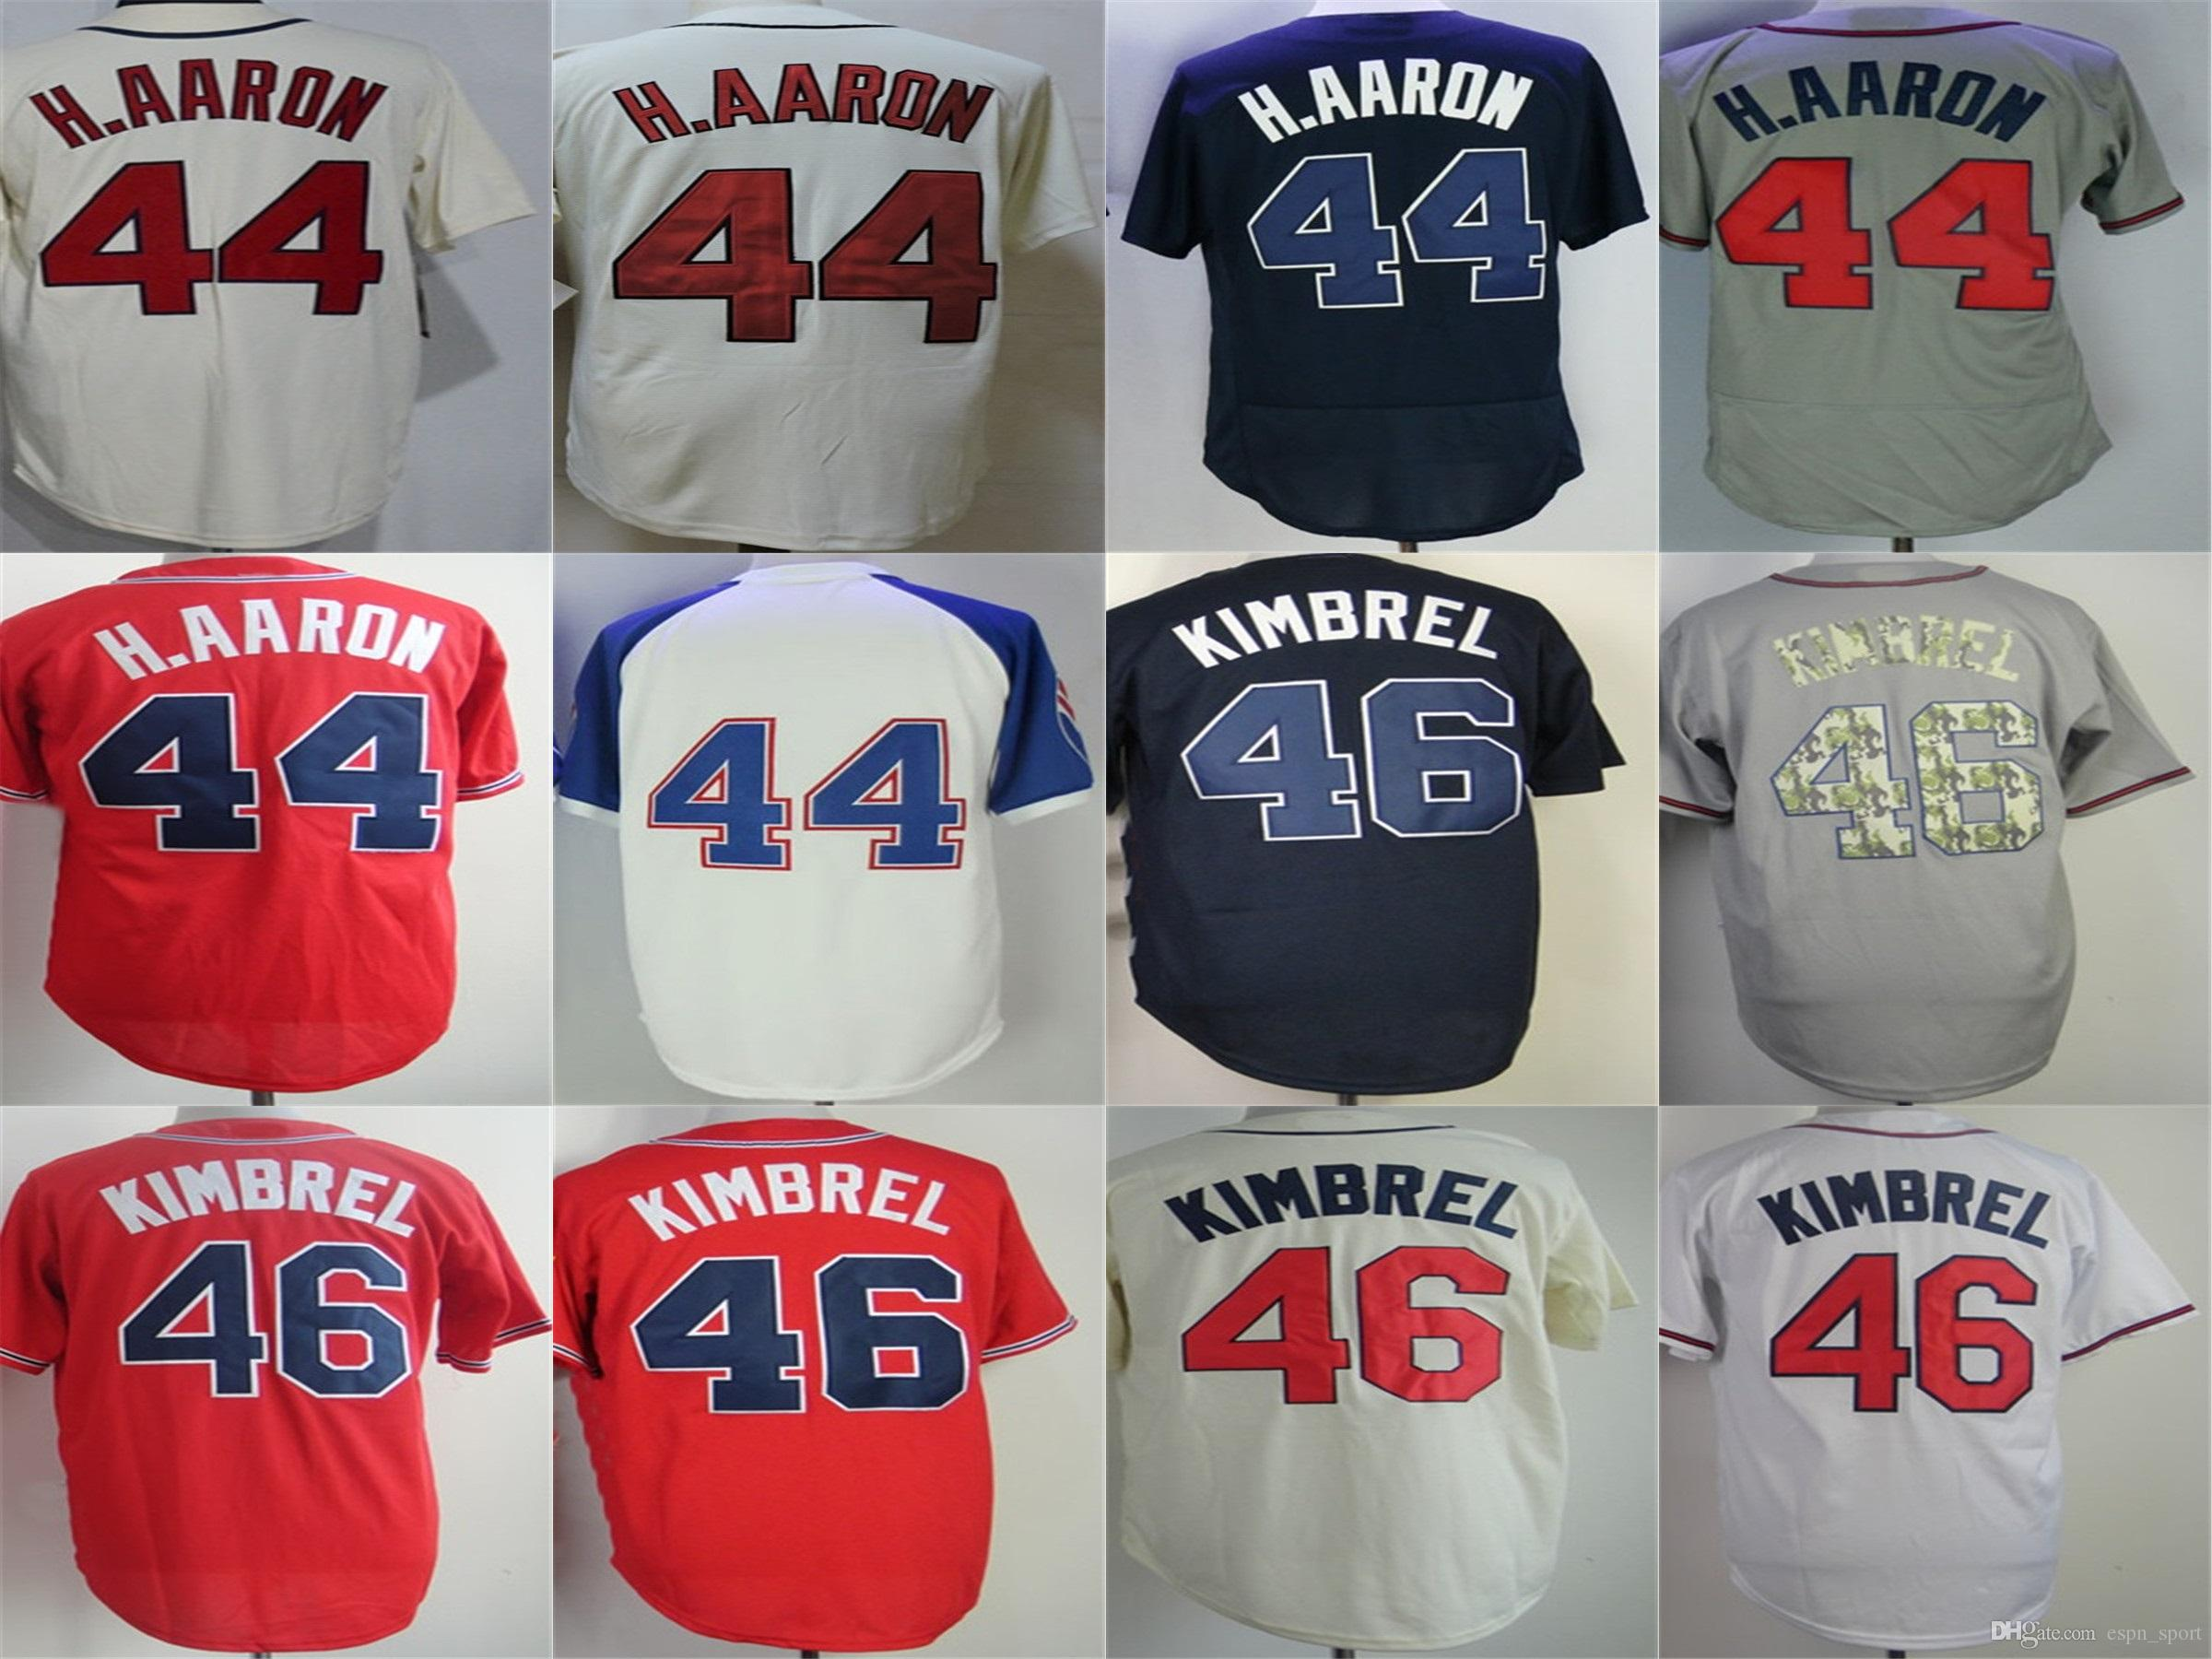 4ac39742f 2016 New TOP Quality Atlanta Jersey  44 Hank Aaron 46 Craig Kimbrel Jersey  White Cream Red Grey Blue Baseball Jersey Cheap Wholesale Atlanta Jerseys  44 Hank ...